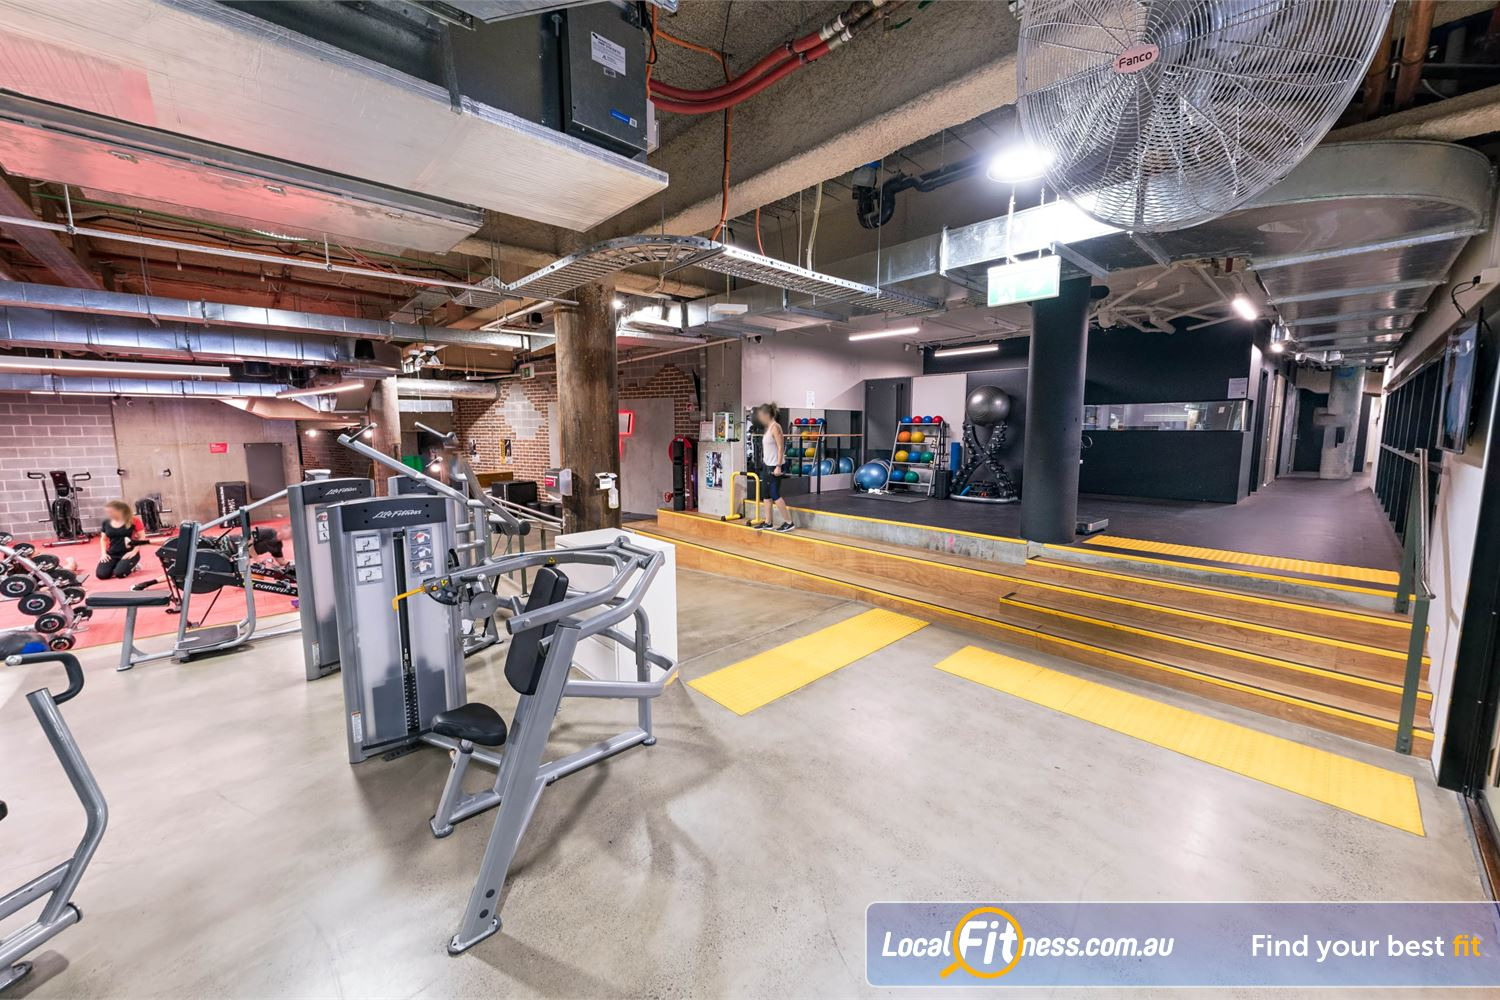 Fitness First Platinum Shelley St Sydney Multiple fitness areas including strength, freestyle, ab and stretching and more.